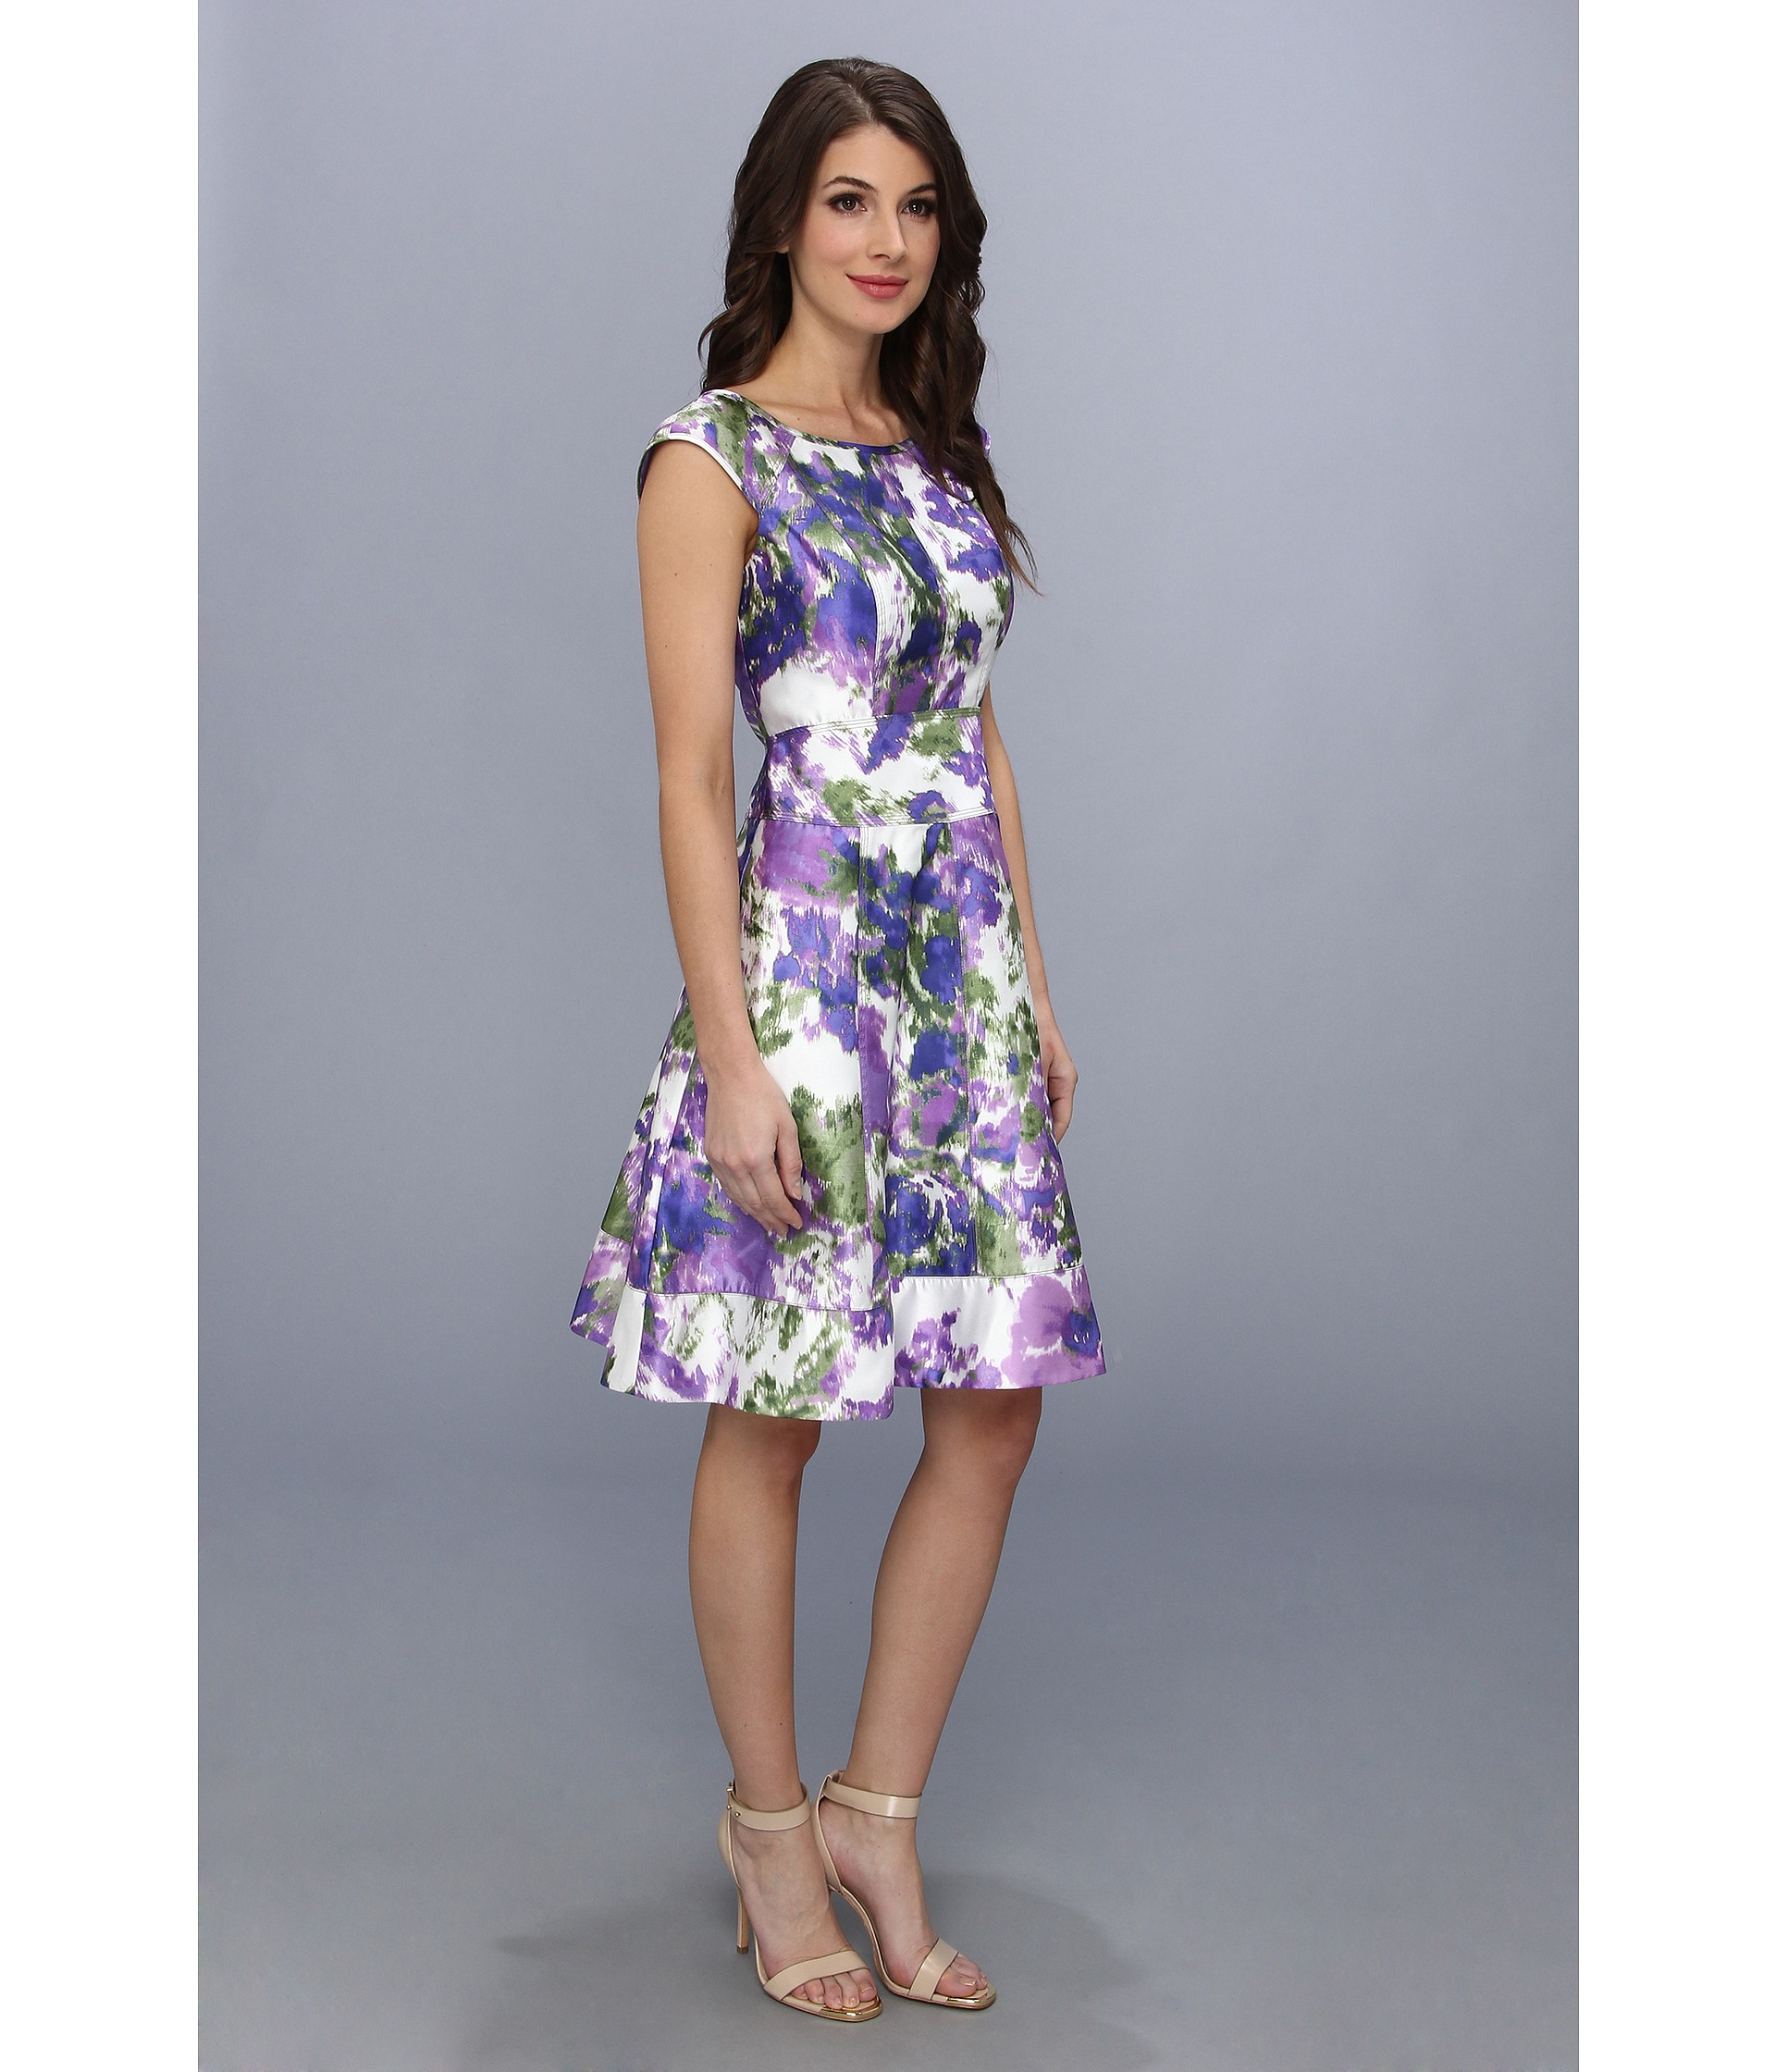 ab3a99ec5b3483 Maggy London Floral Printed Taffeta Cap Sleeve Fit and Flare Dress ...